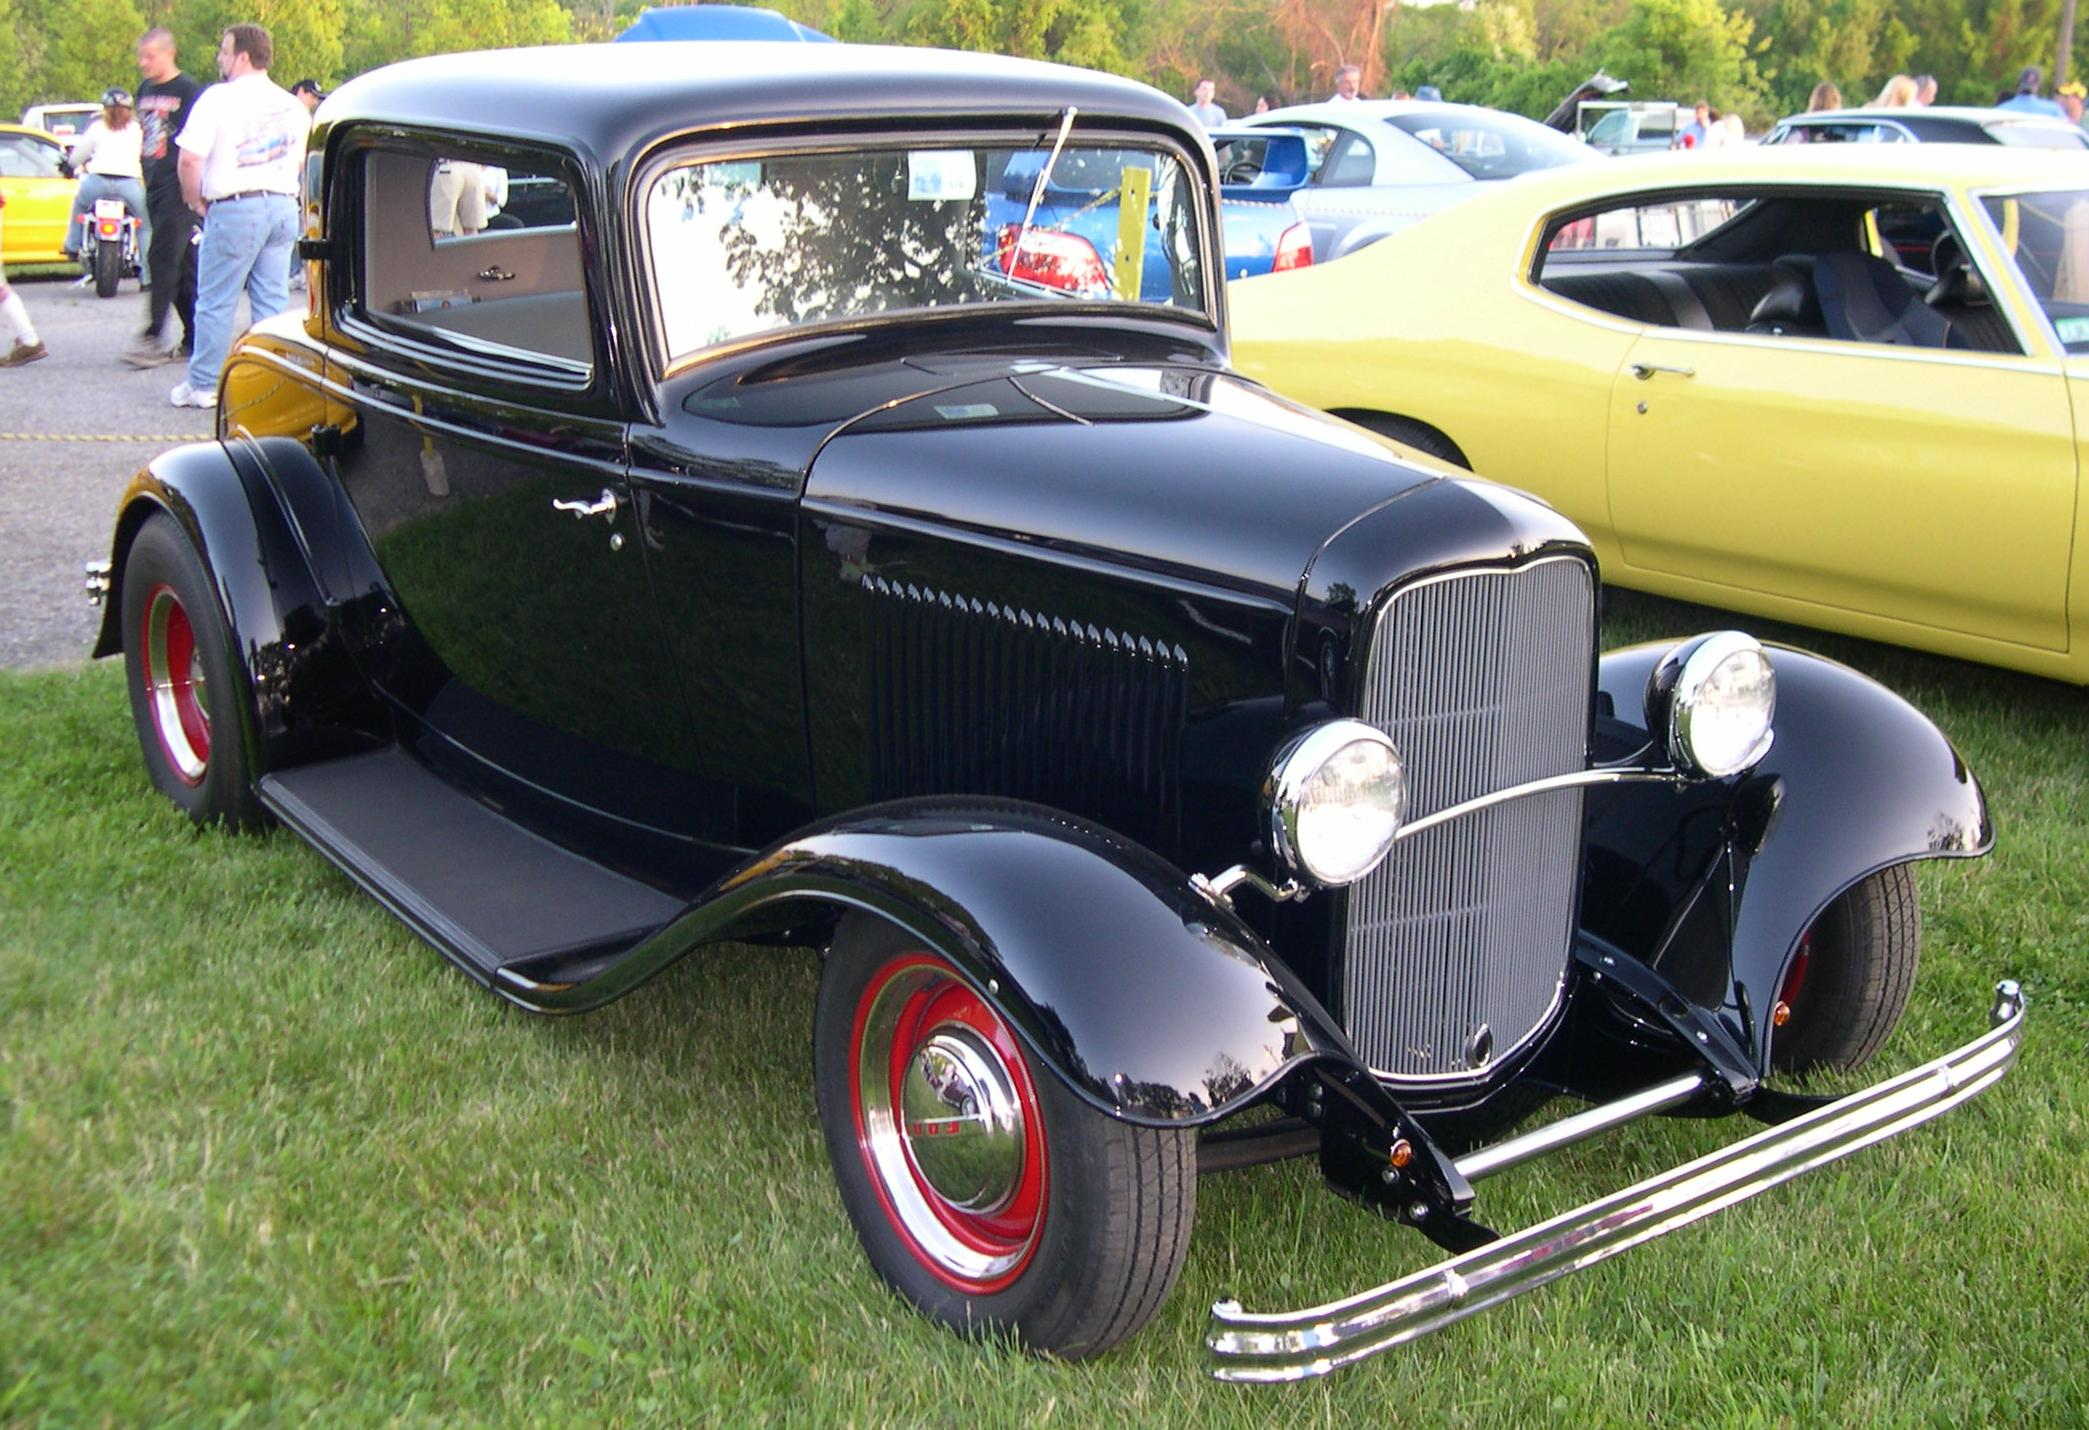 File:1932 Ford Deuce Coupe Hot Rod.jpg - Wikimedia Commons